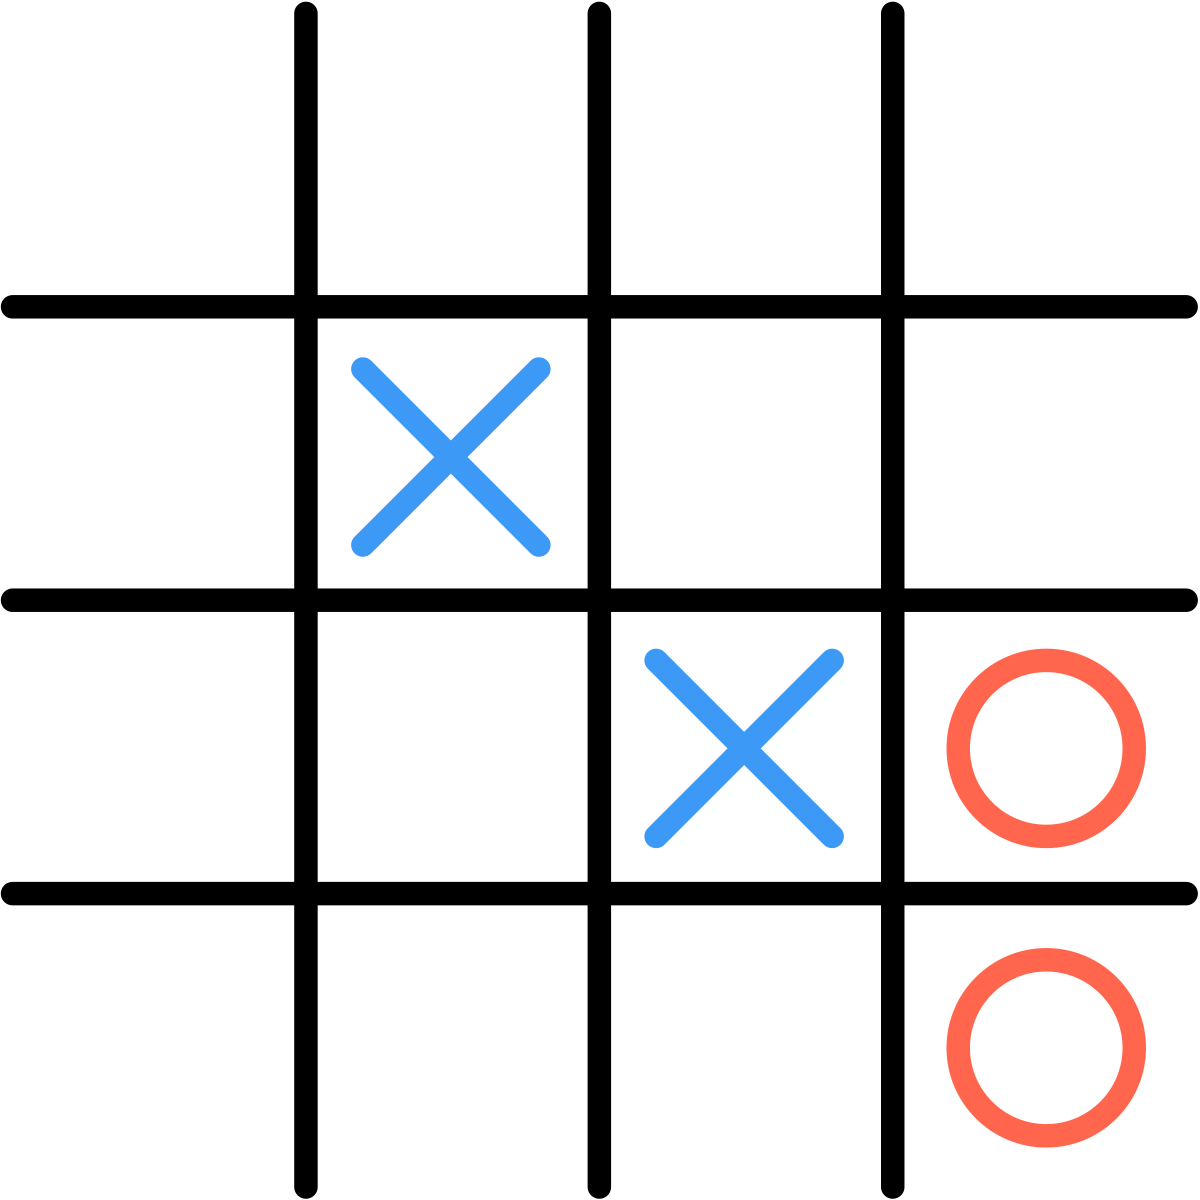 In this example, Xavier begins by placing 2 Xs along a diagonal.  Then, Olivia plays two Os along the right column.